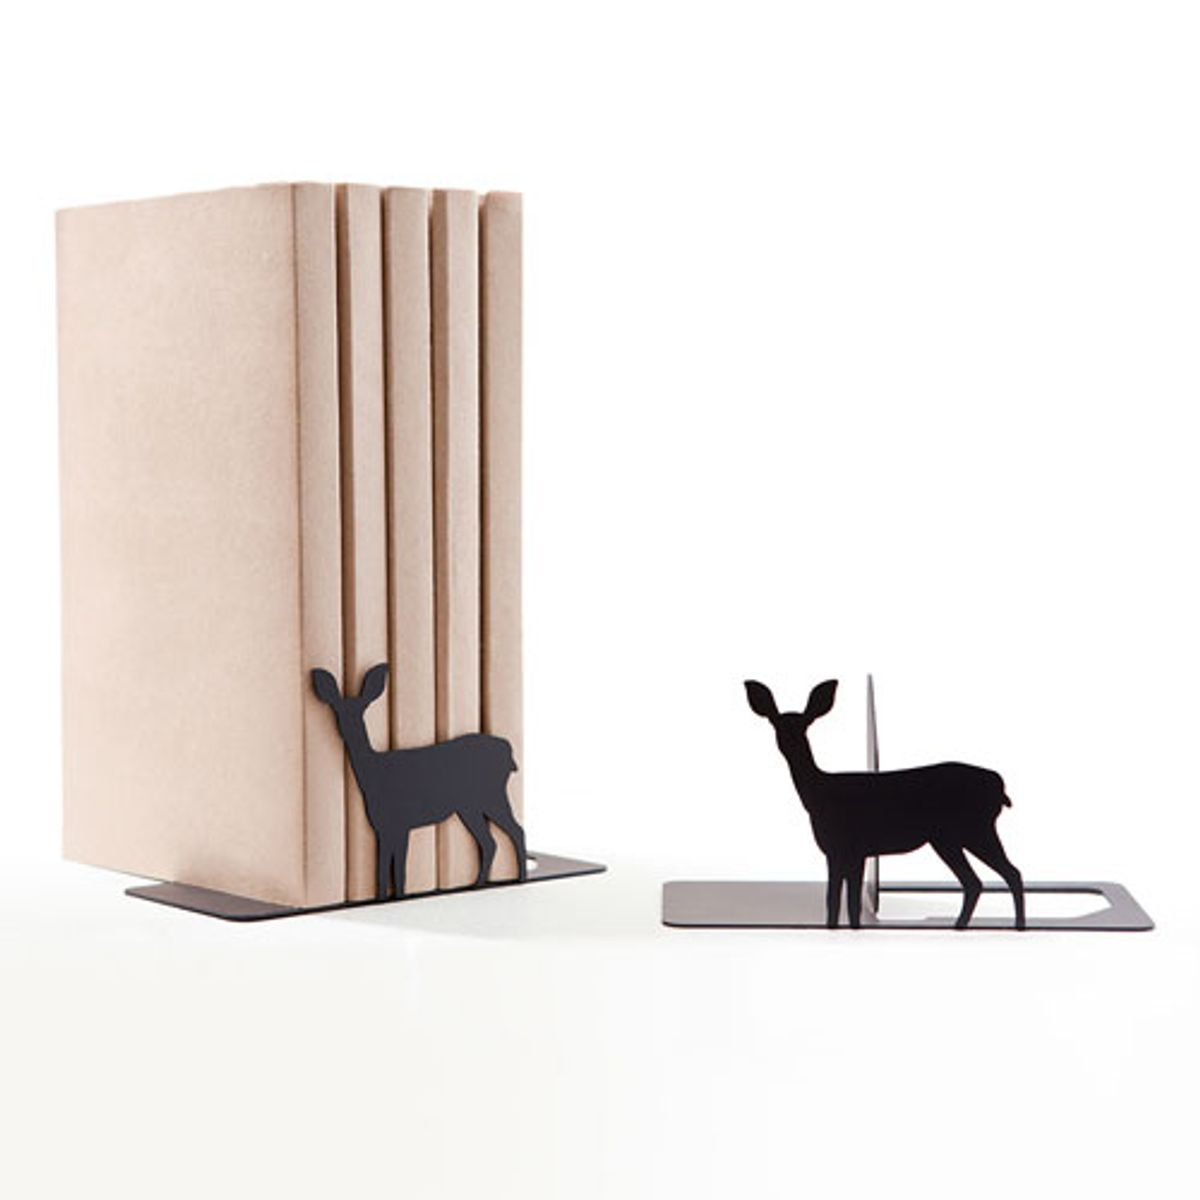 serre livre en acier jungle bookend pa design decoclico. Black Bedroom Furniture Sets. Home Design Ideas